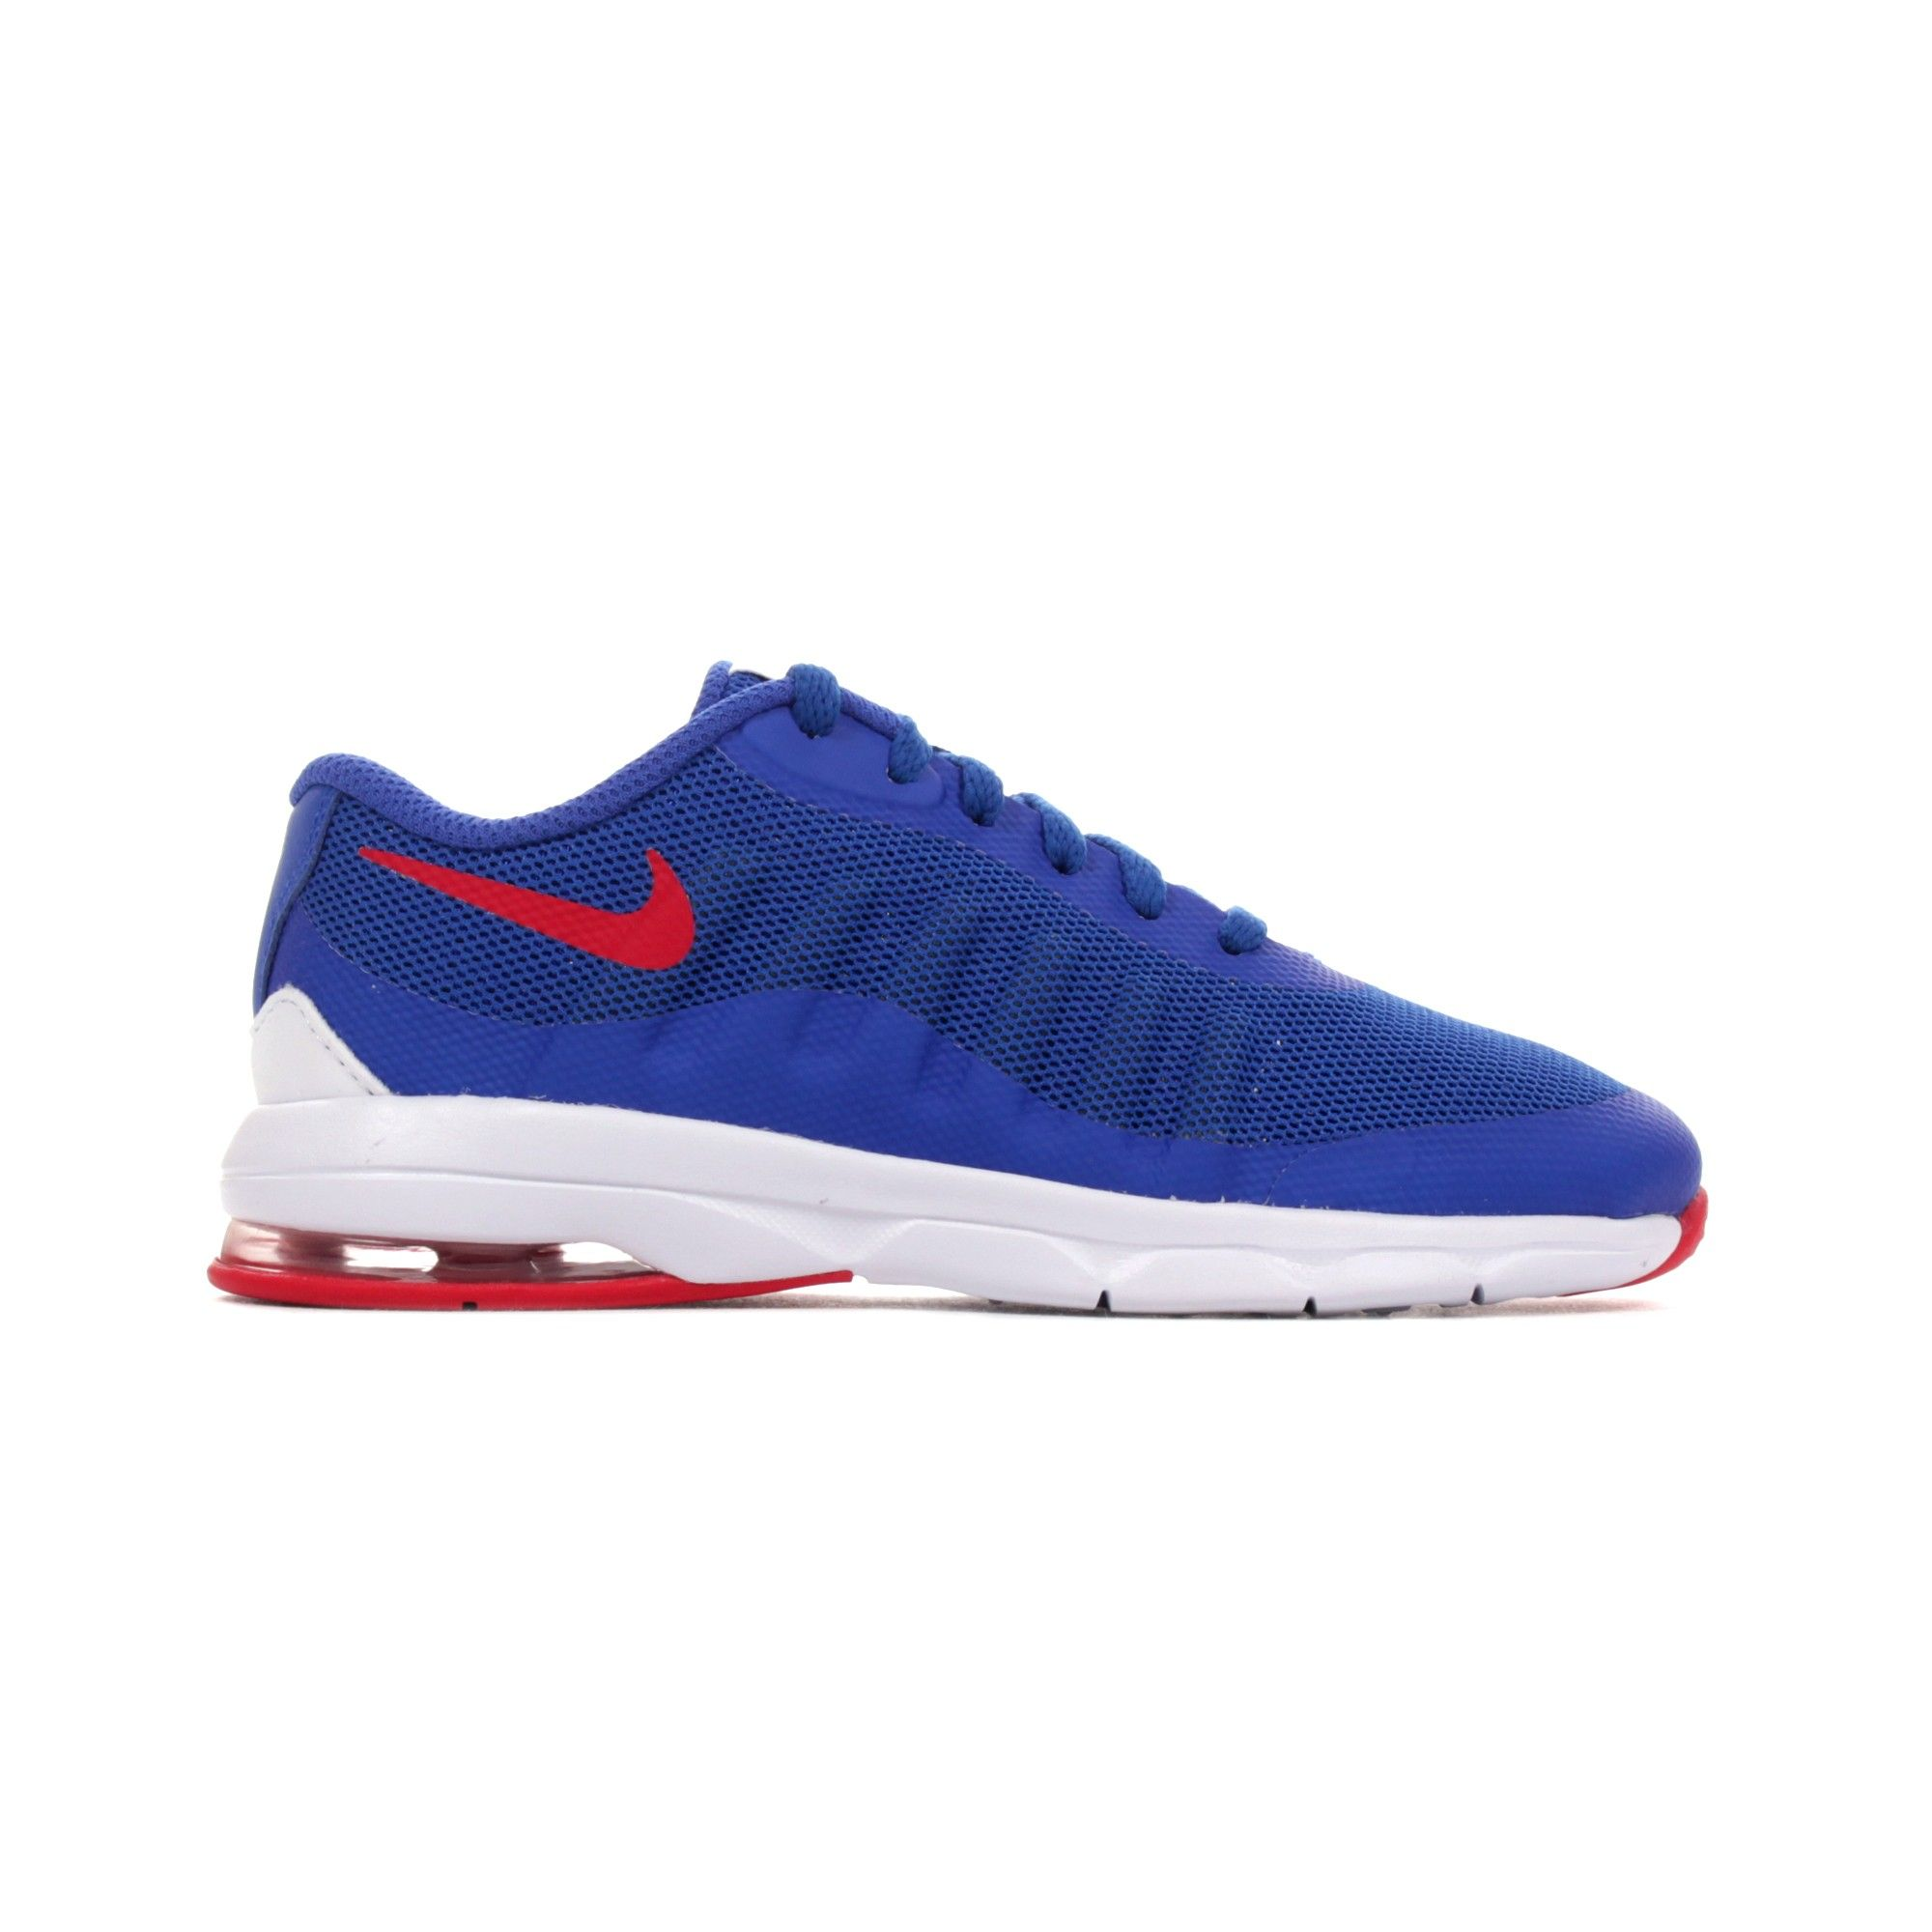 be01c974821e2 ... good the nike air max invigor junior kids shoes gets its inspiration  from the well known